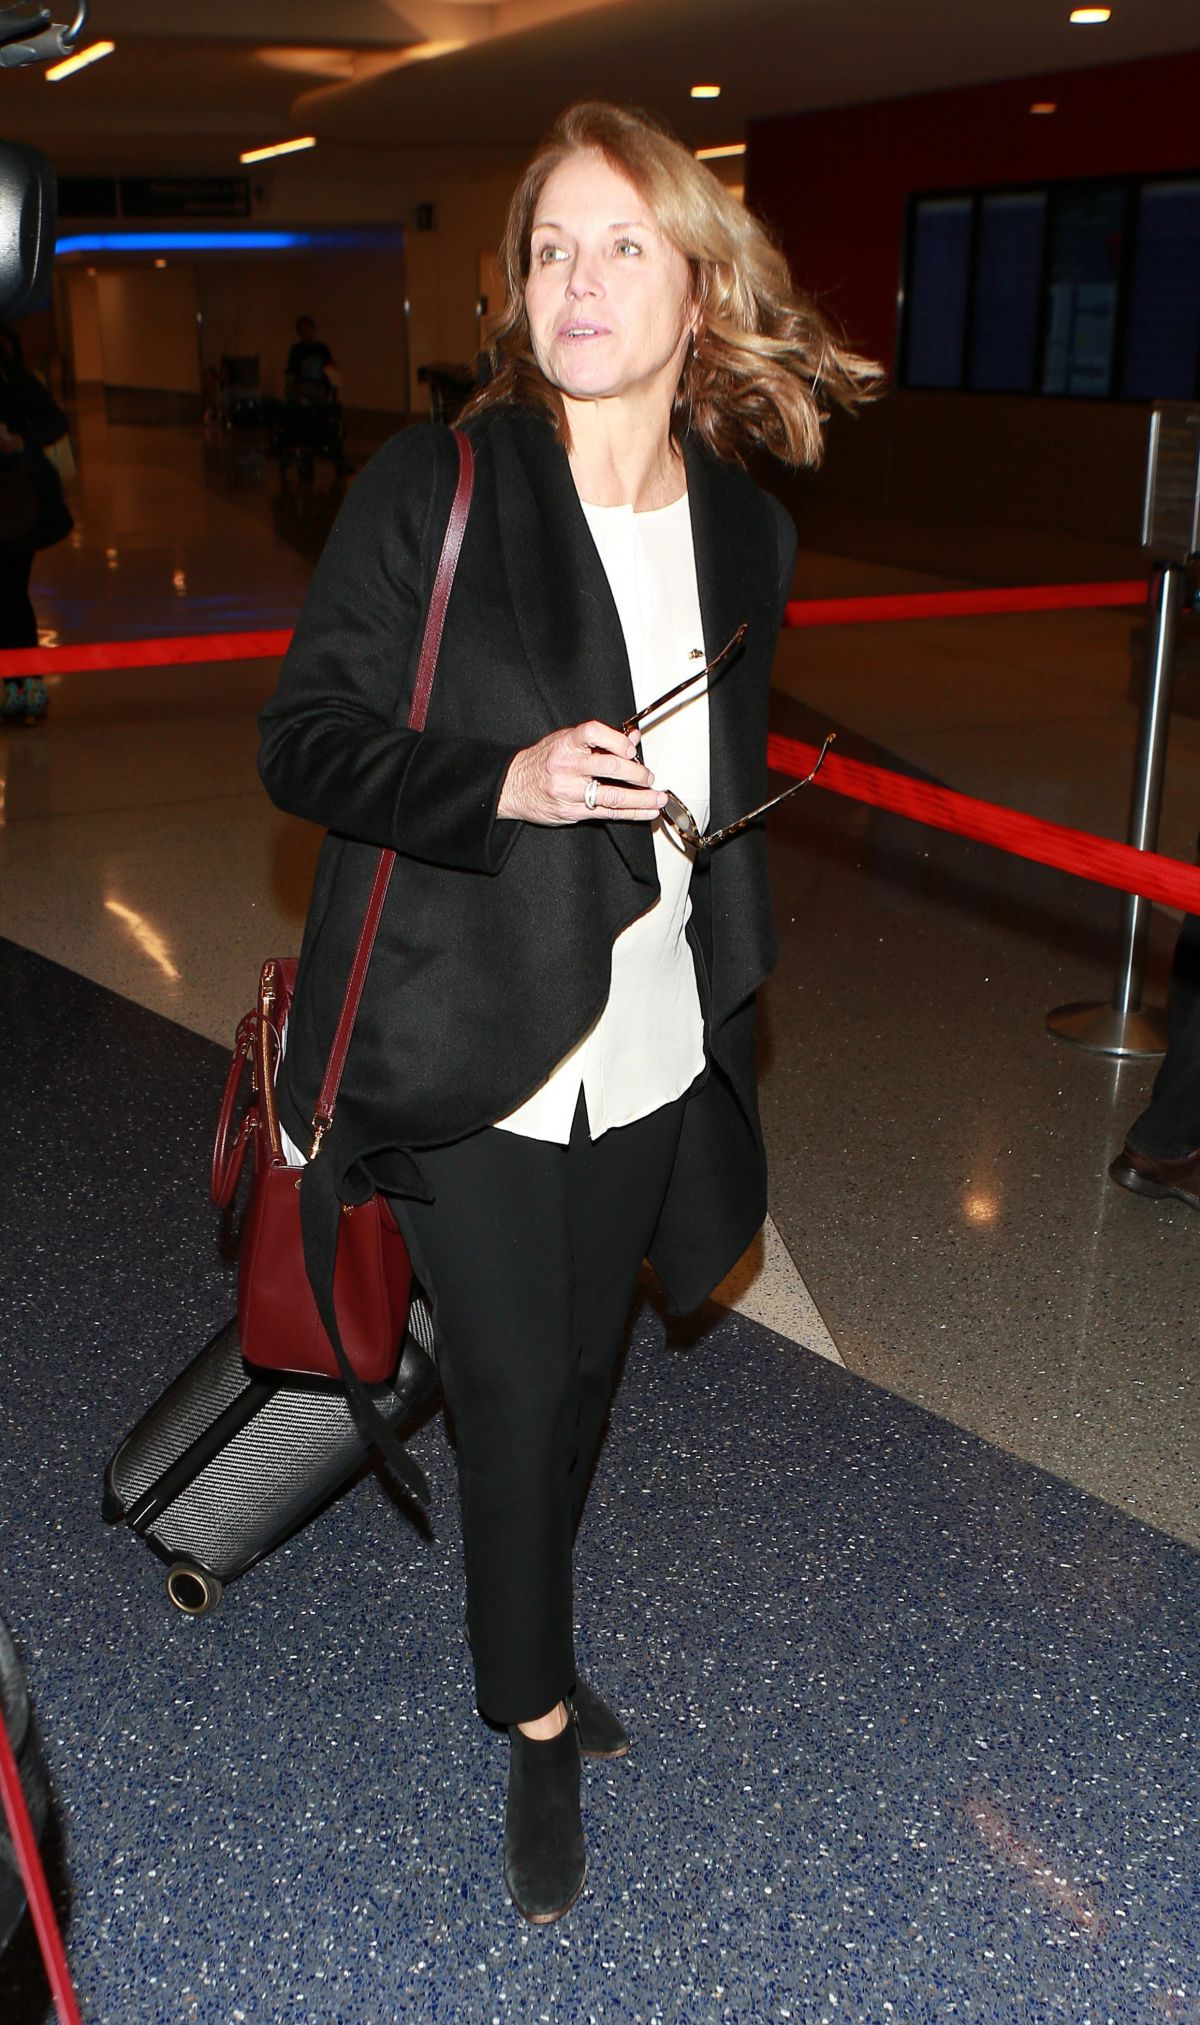 KATIE COURIC at LAX Airport in Los Angeles 01/19/2016